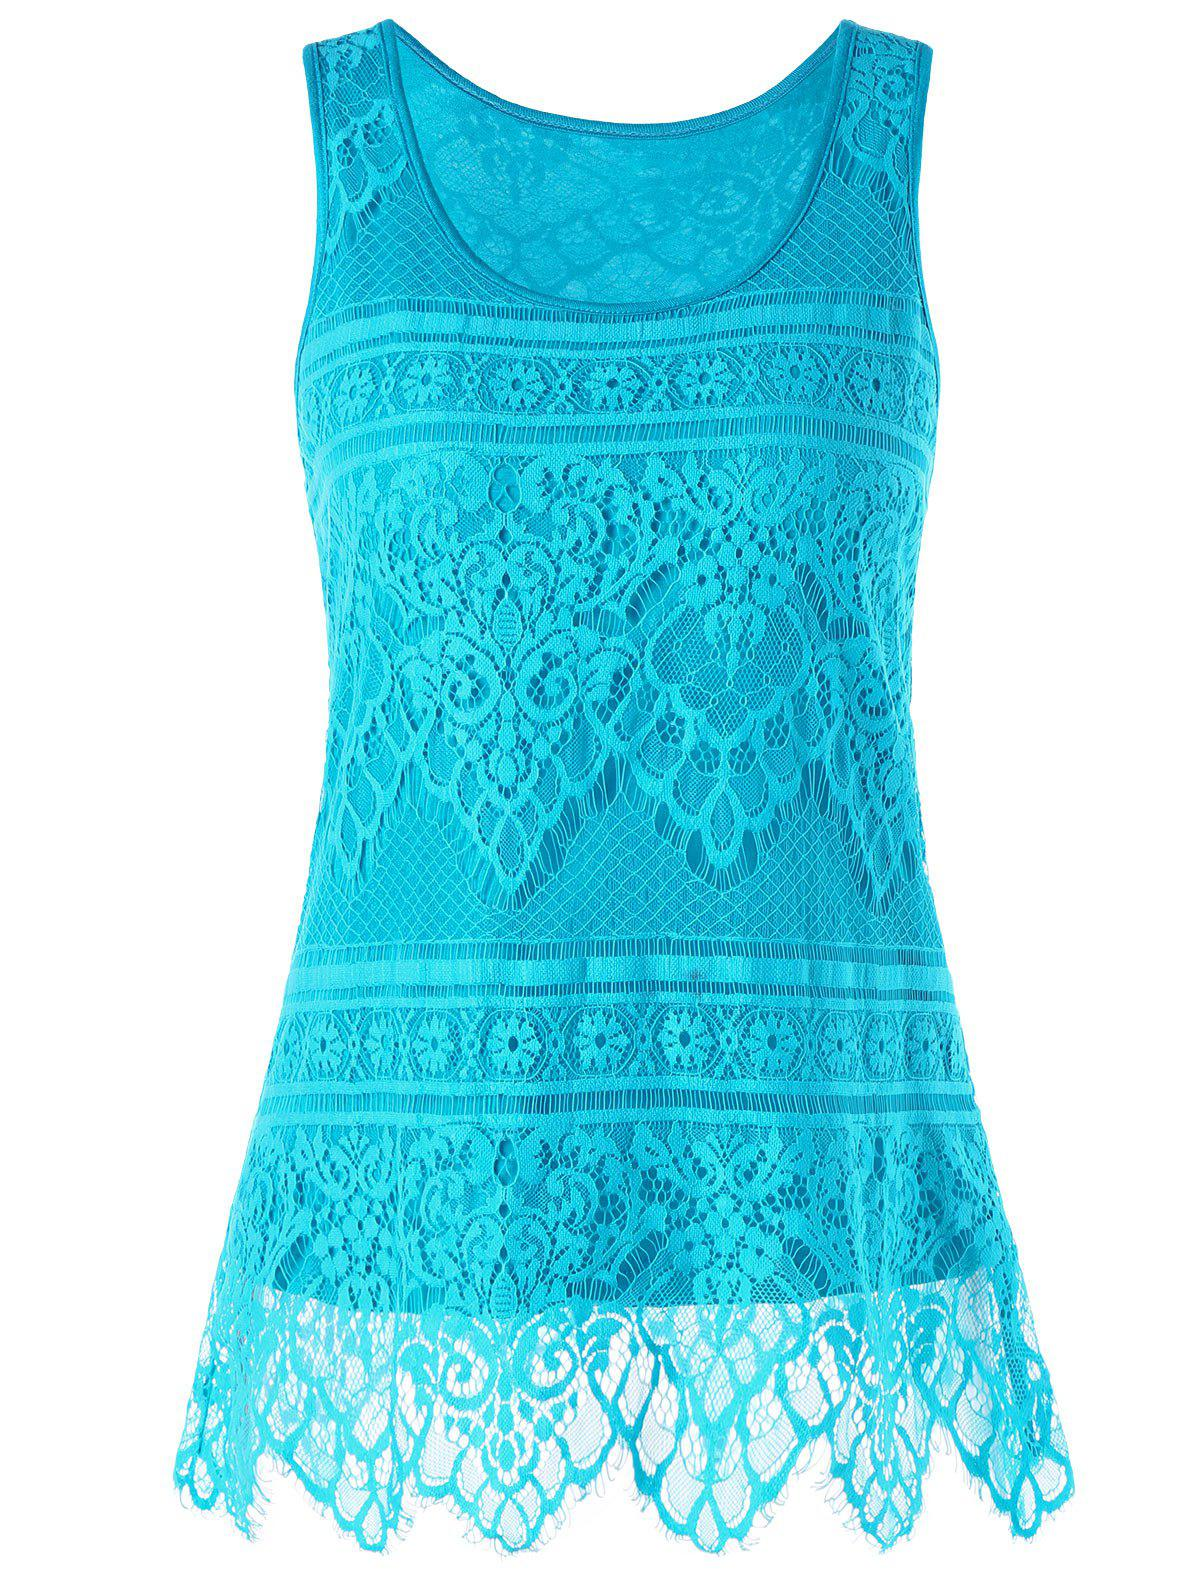 Lace U Neck Tank Top - BLUE M